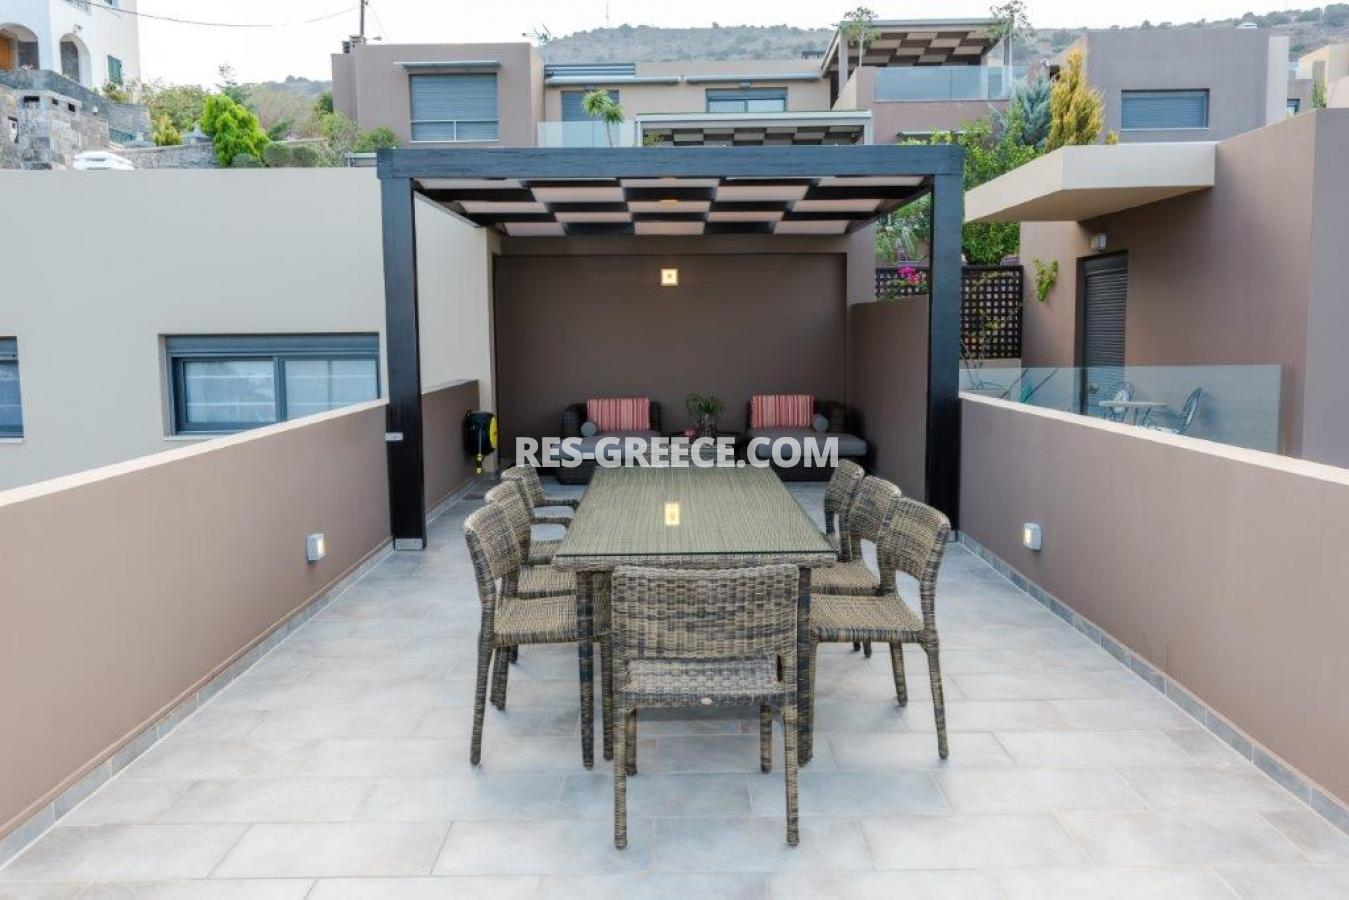 Aura Blue, Crete, Greece - villa with pool for sale in the best spot in Crete, in Elounda - Photo 30